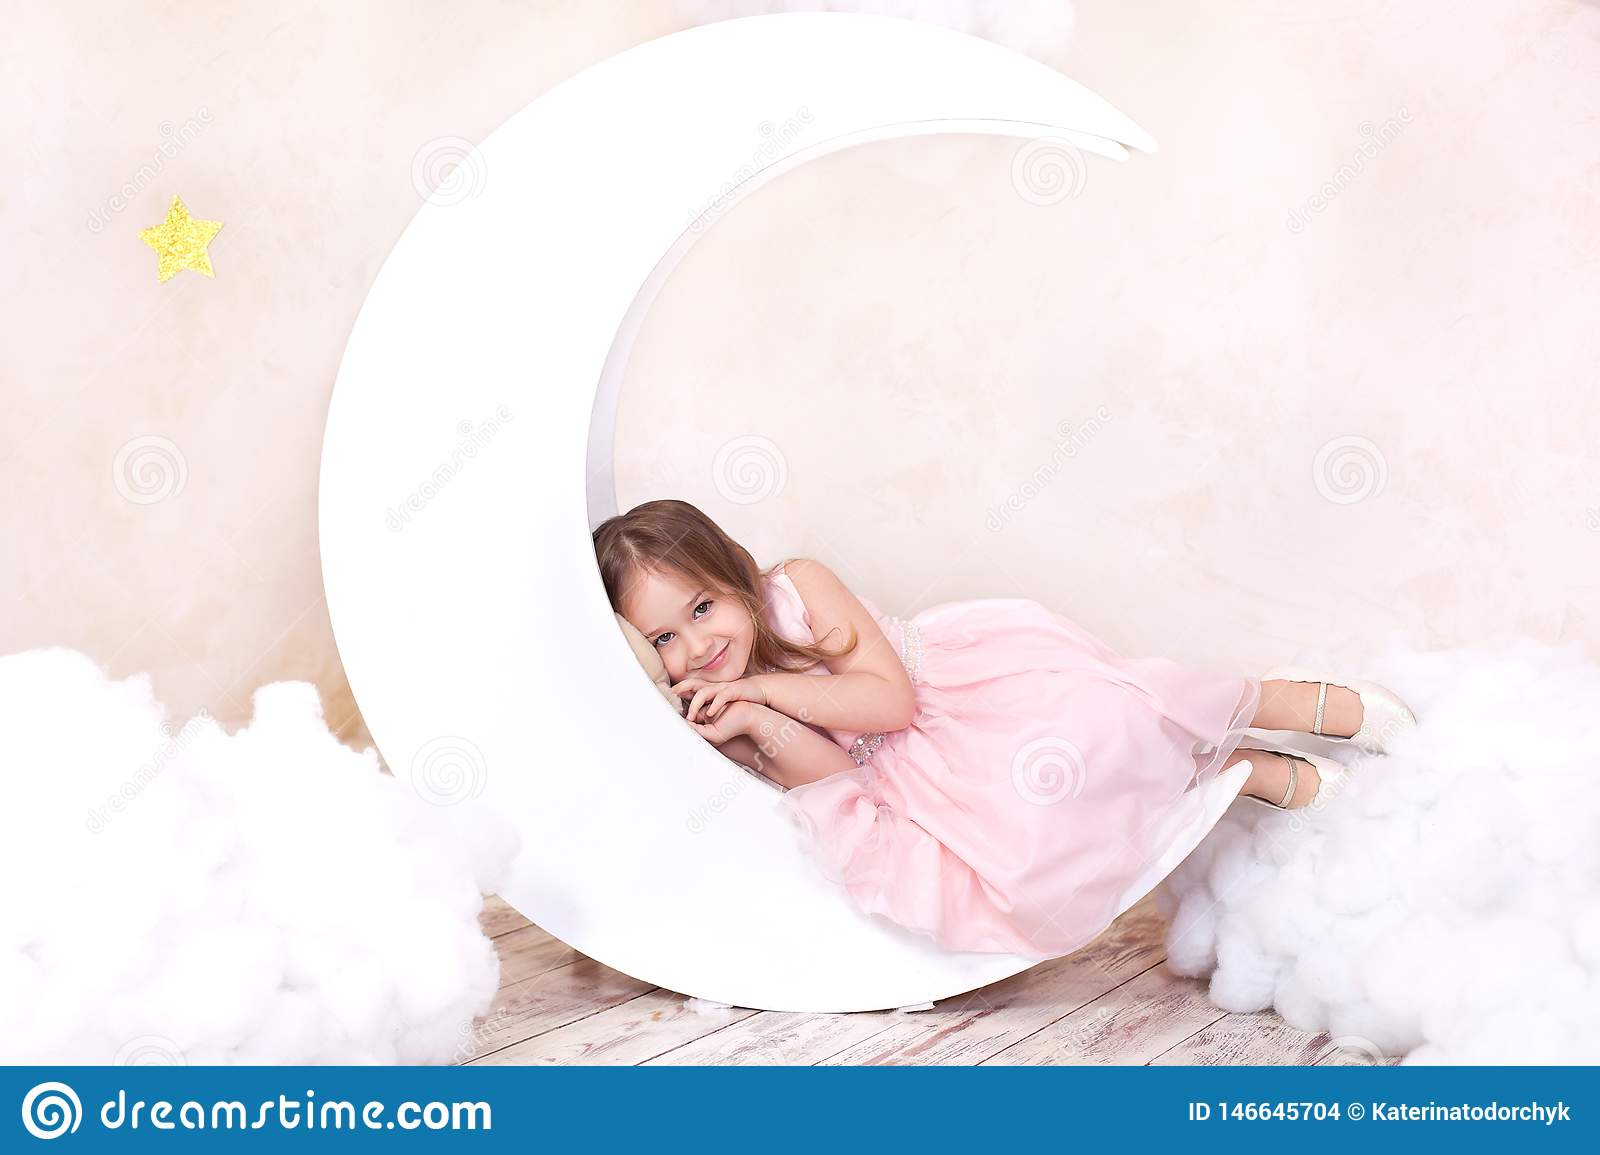 Beautiful girl lies in the studio with the decor of the moon, stars and clouds. Little girl dreaming.  Sweet dreams. Little cute g